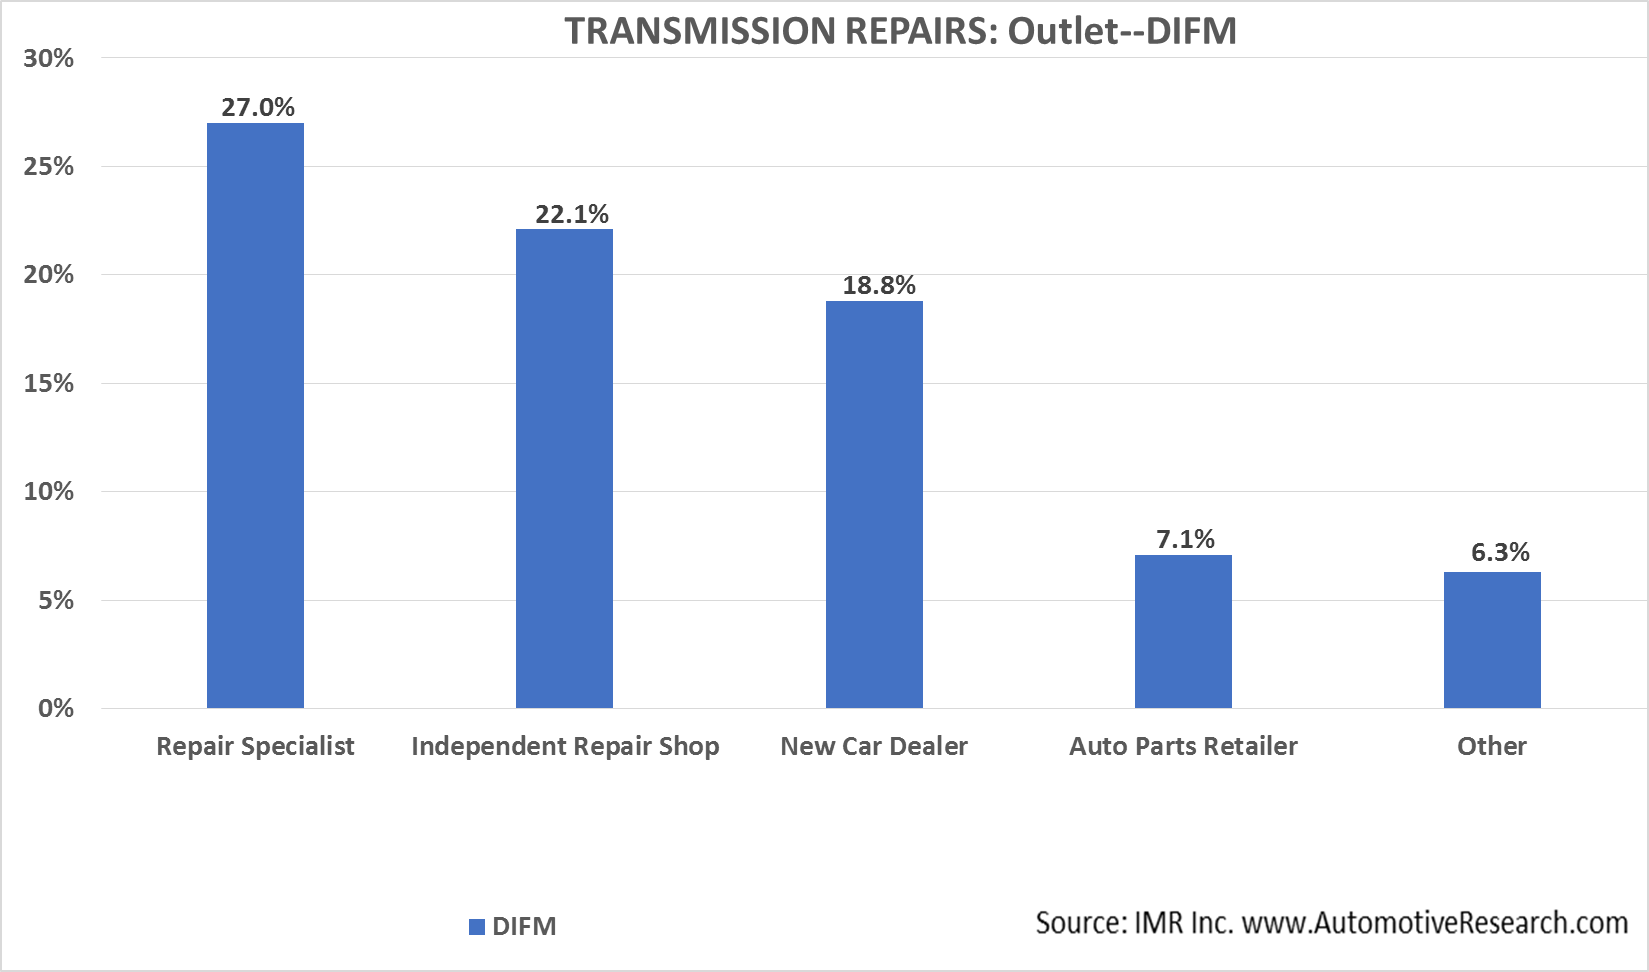 Automotive Market Research - DIFM Outlet Transmission Repairs